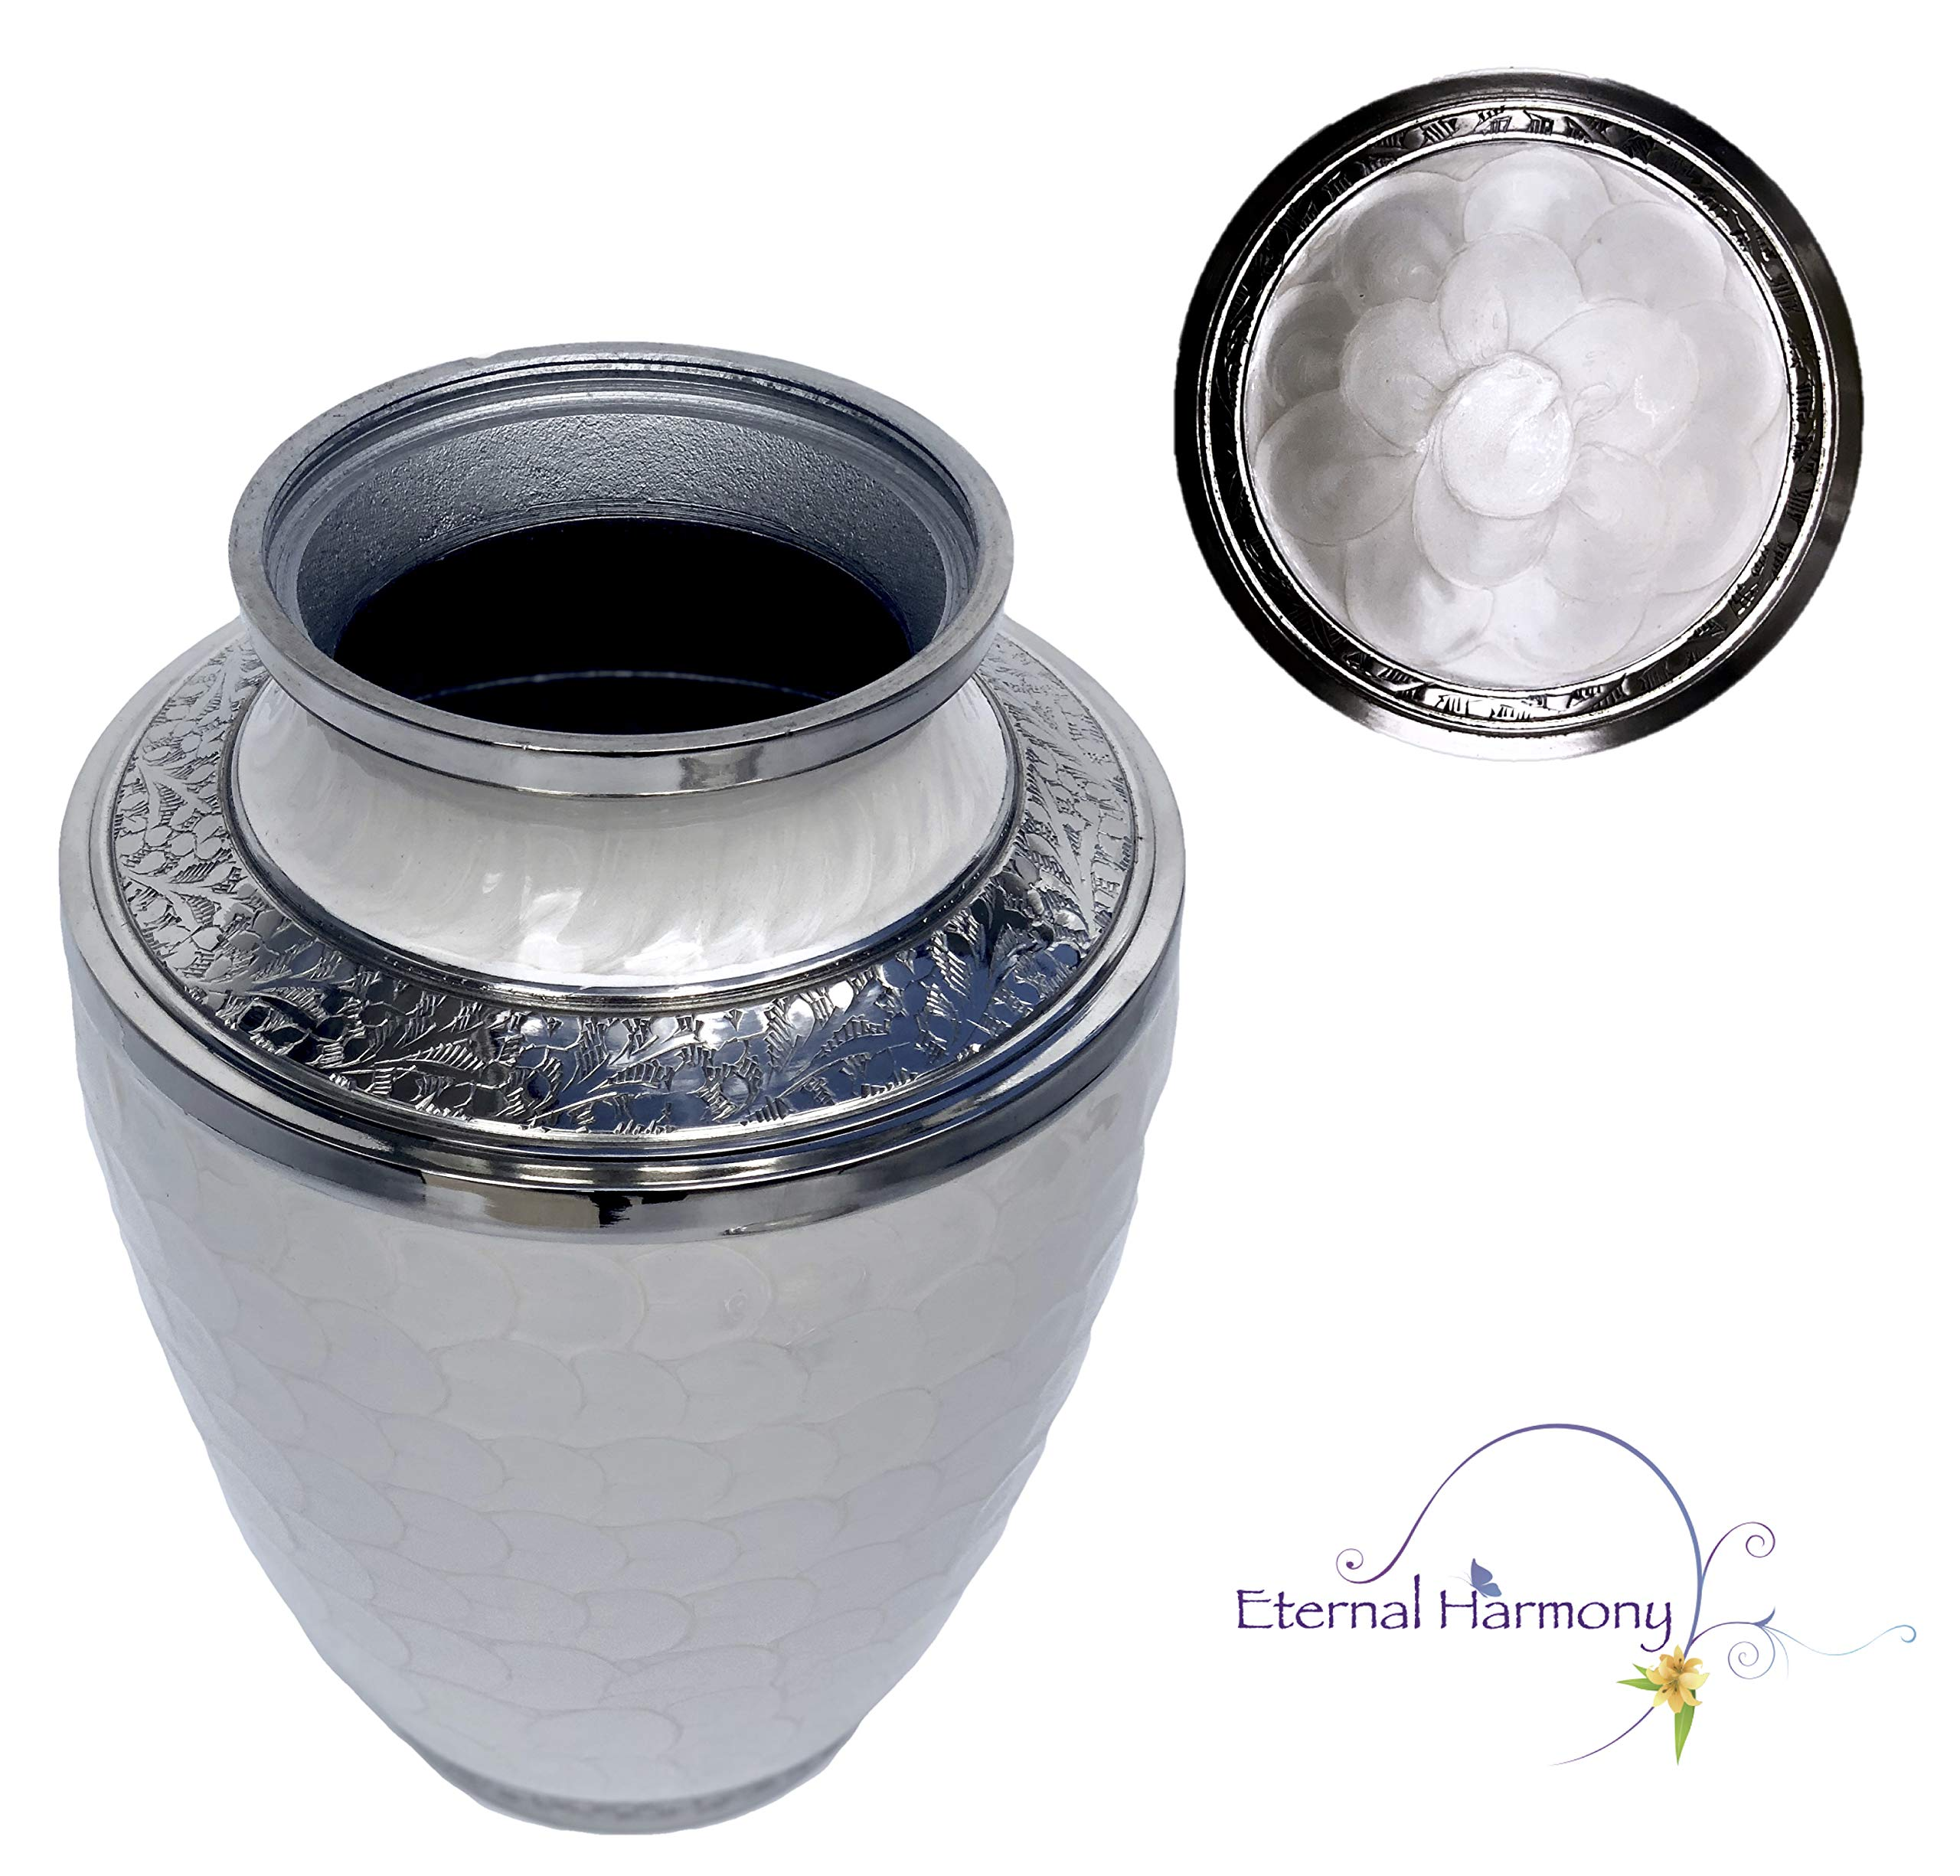 Eternal Harmony Cremation Urn for Human Ashes | Funeral Urn Carefully Handcrafted with Elegant Finishes to Honor and Remember Your Loved One | Adult Urn Large Size with Beautiful Velvet Bag by Eternal Harmony (Image #4)